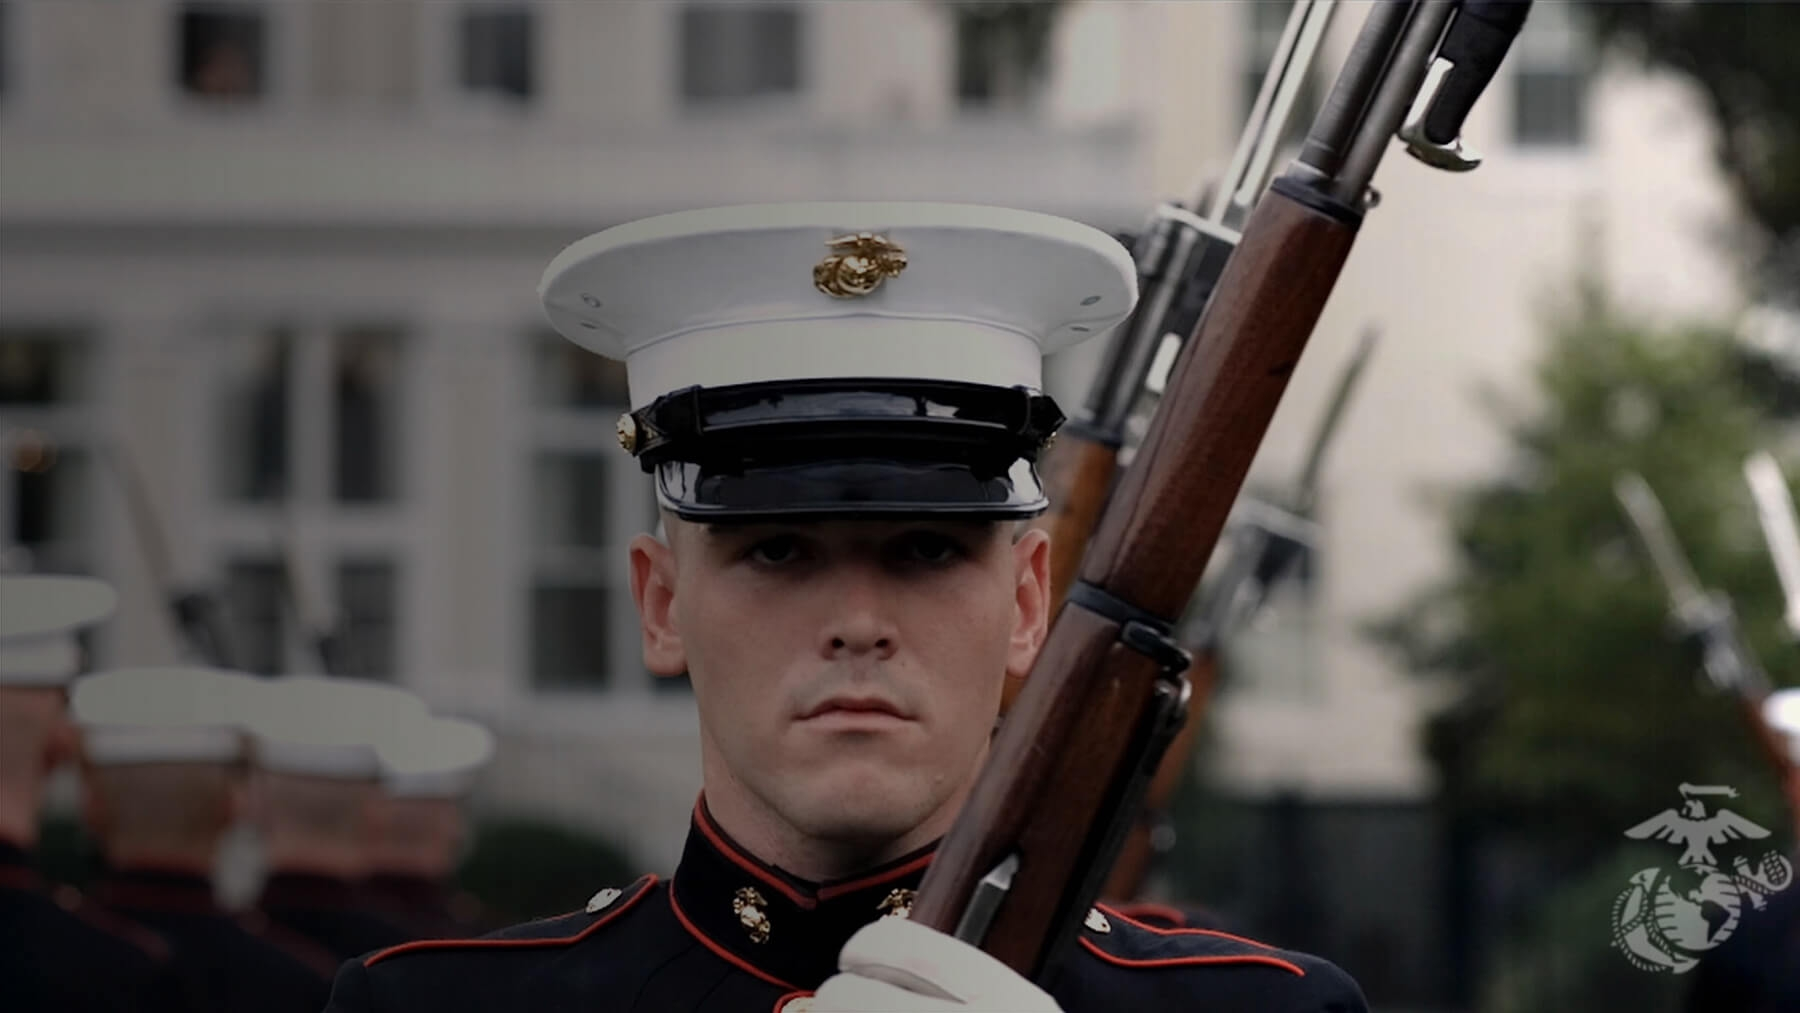 Son in the Marine Corps